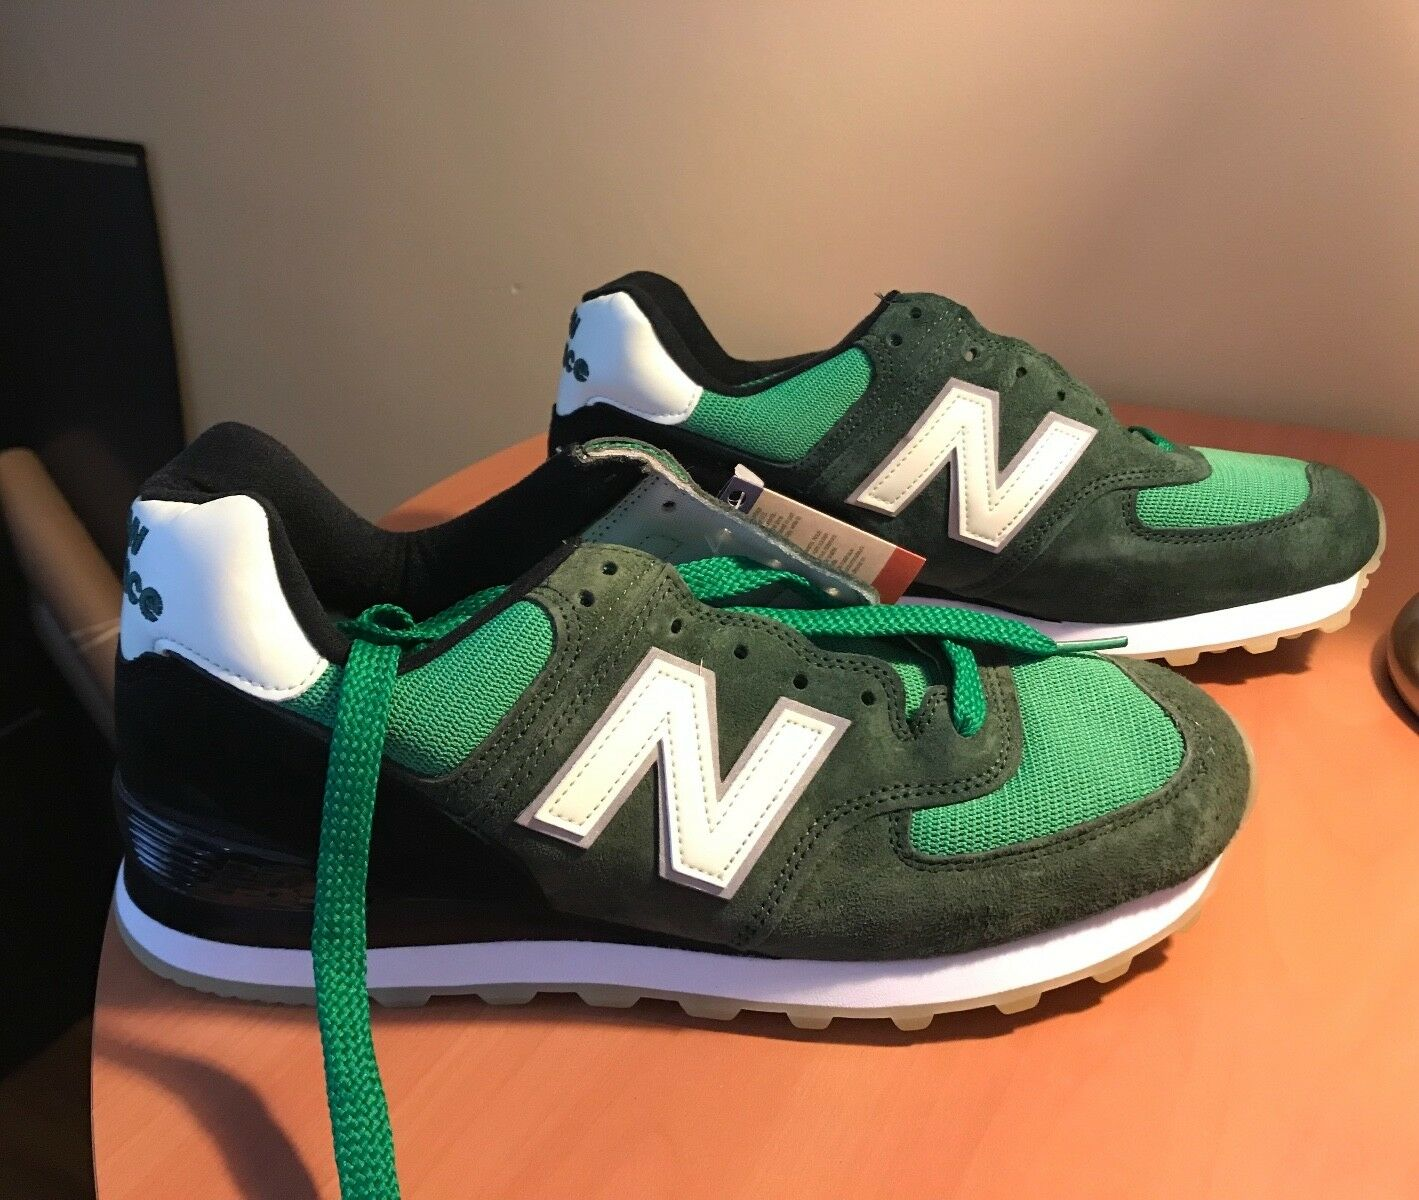 New Balance - Classic Traditional US574M1 - Men's Size 8.5